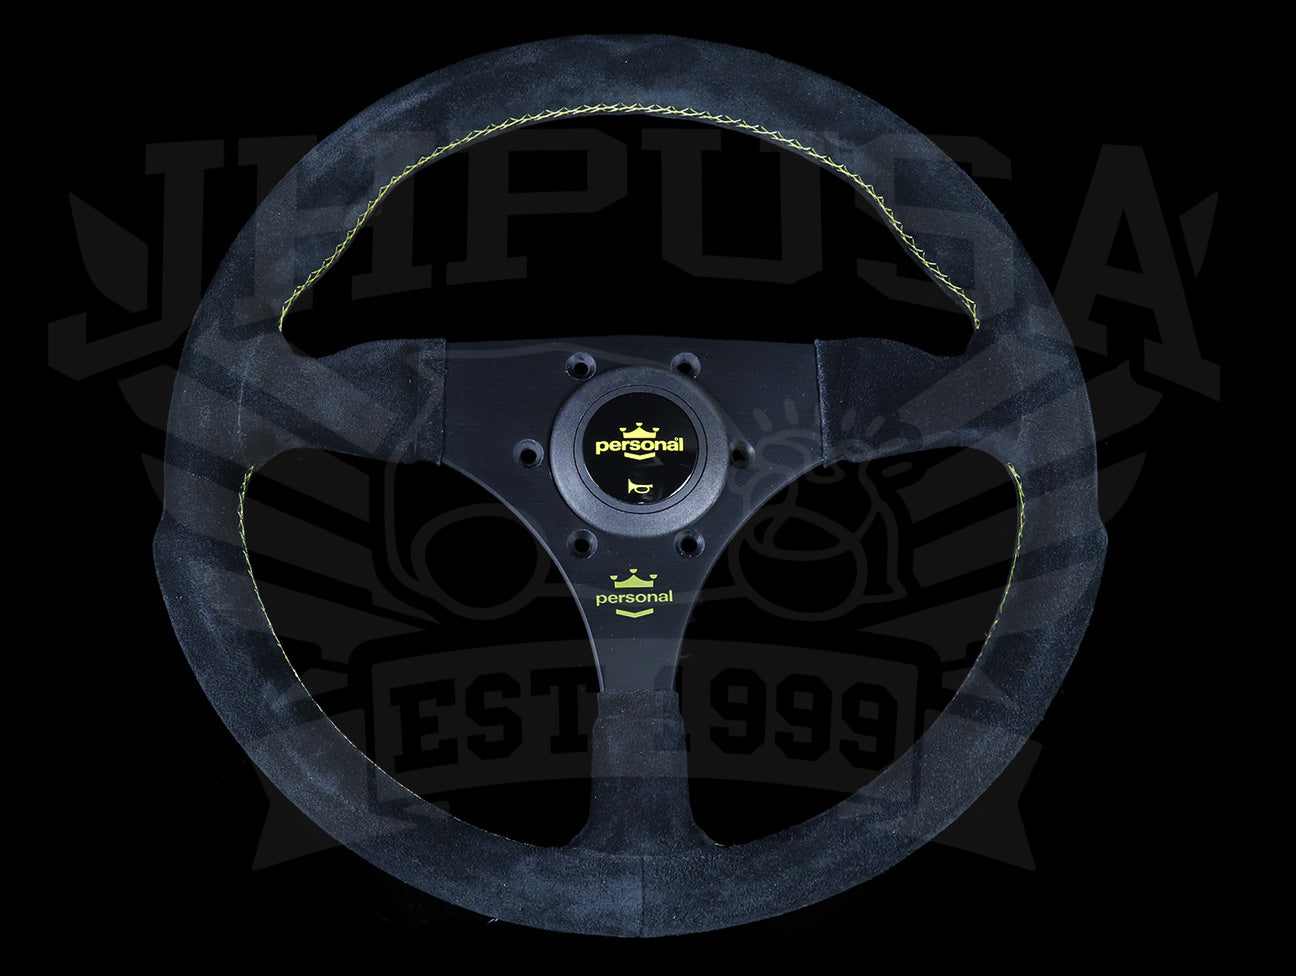 Personal Fitti F1 320mm Steering Wheel - Black Suede / Yellow Stitch